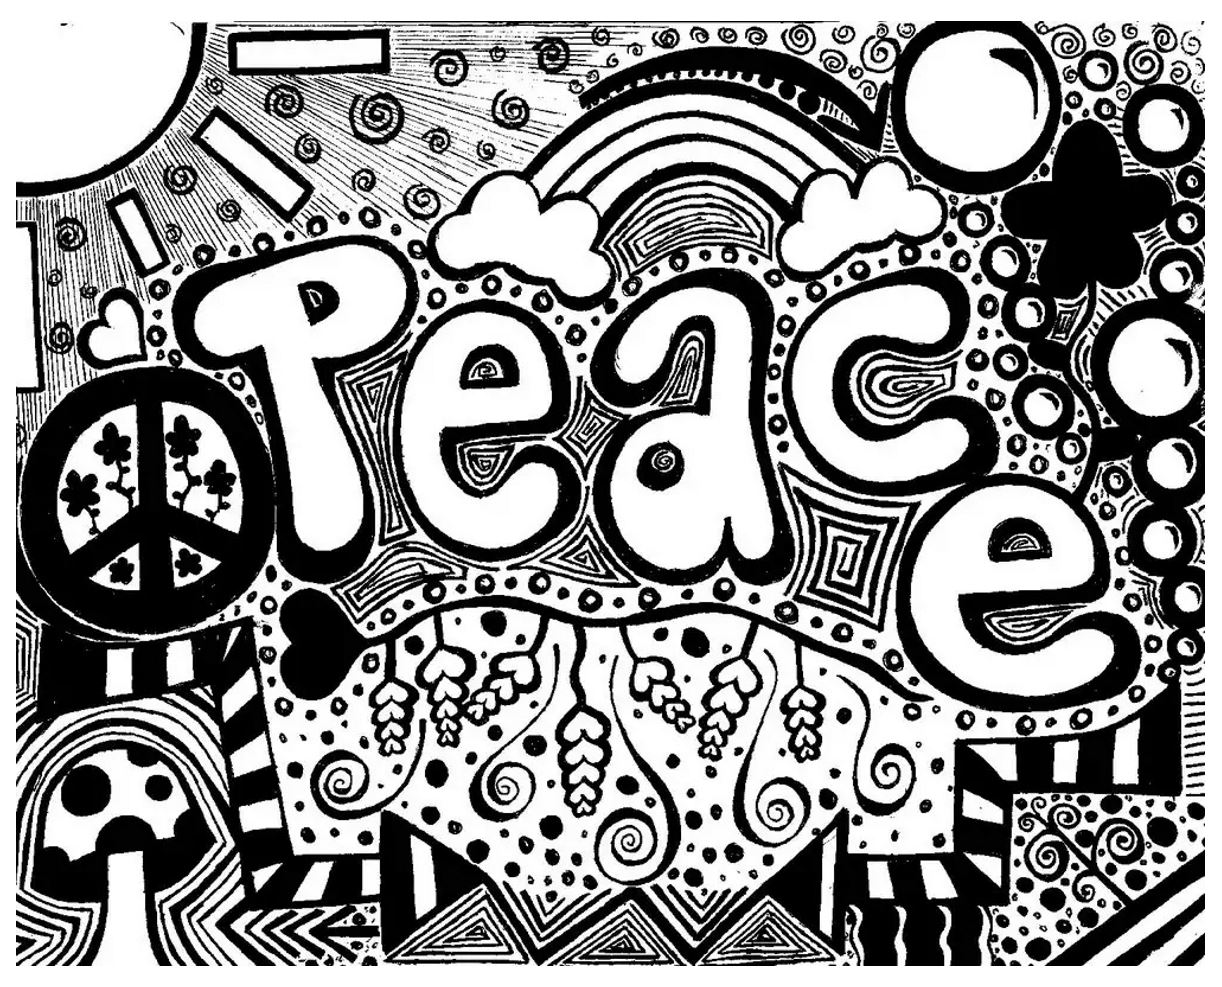 Doodling / Doodle art - Coloring pages for adults - Page 3